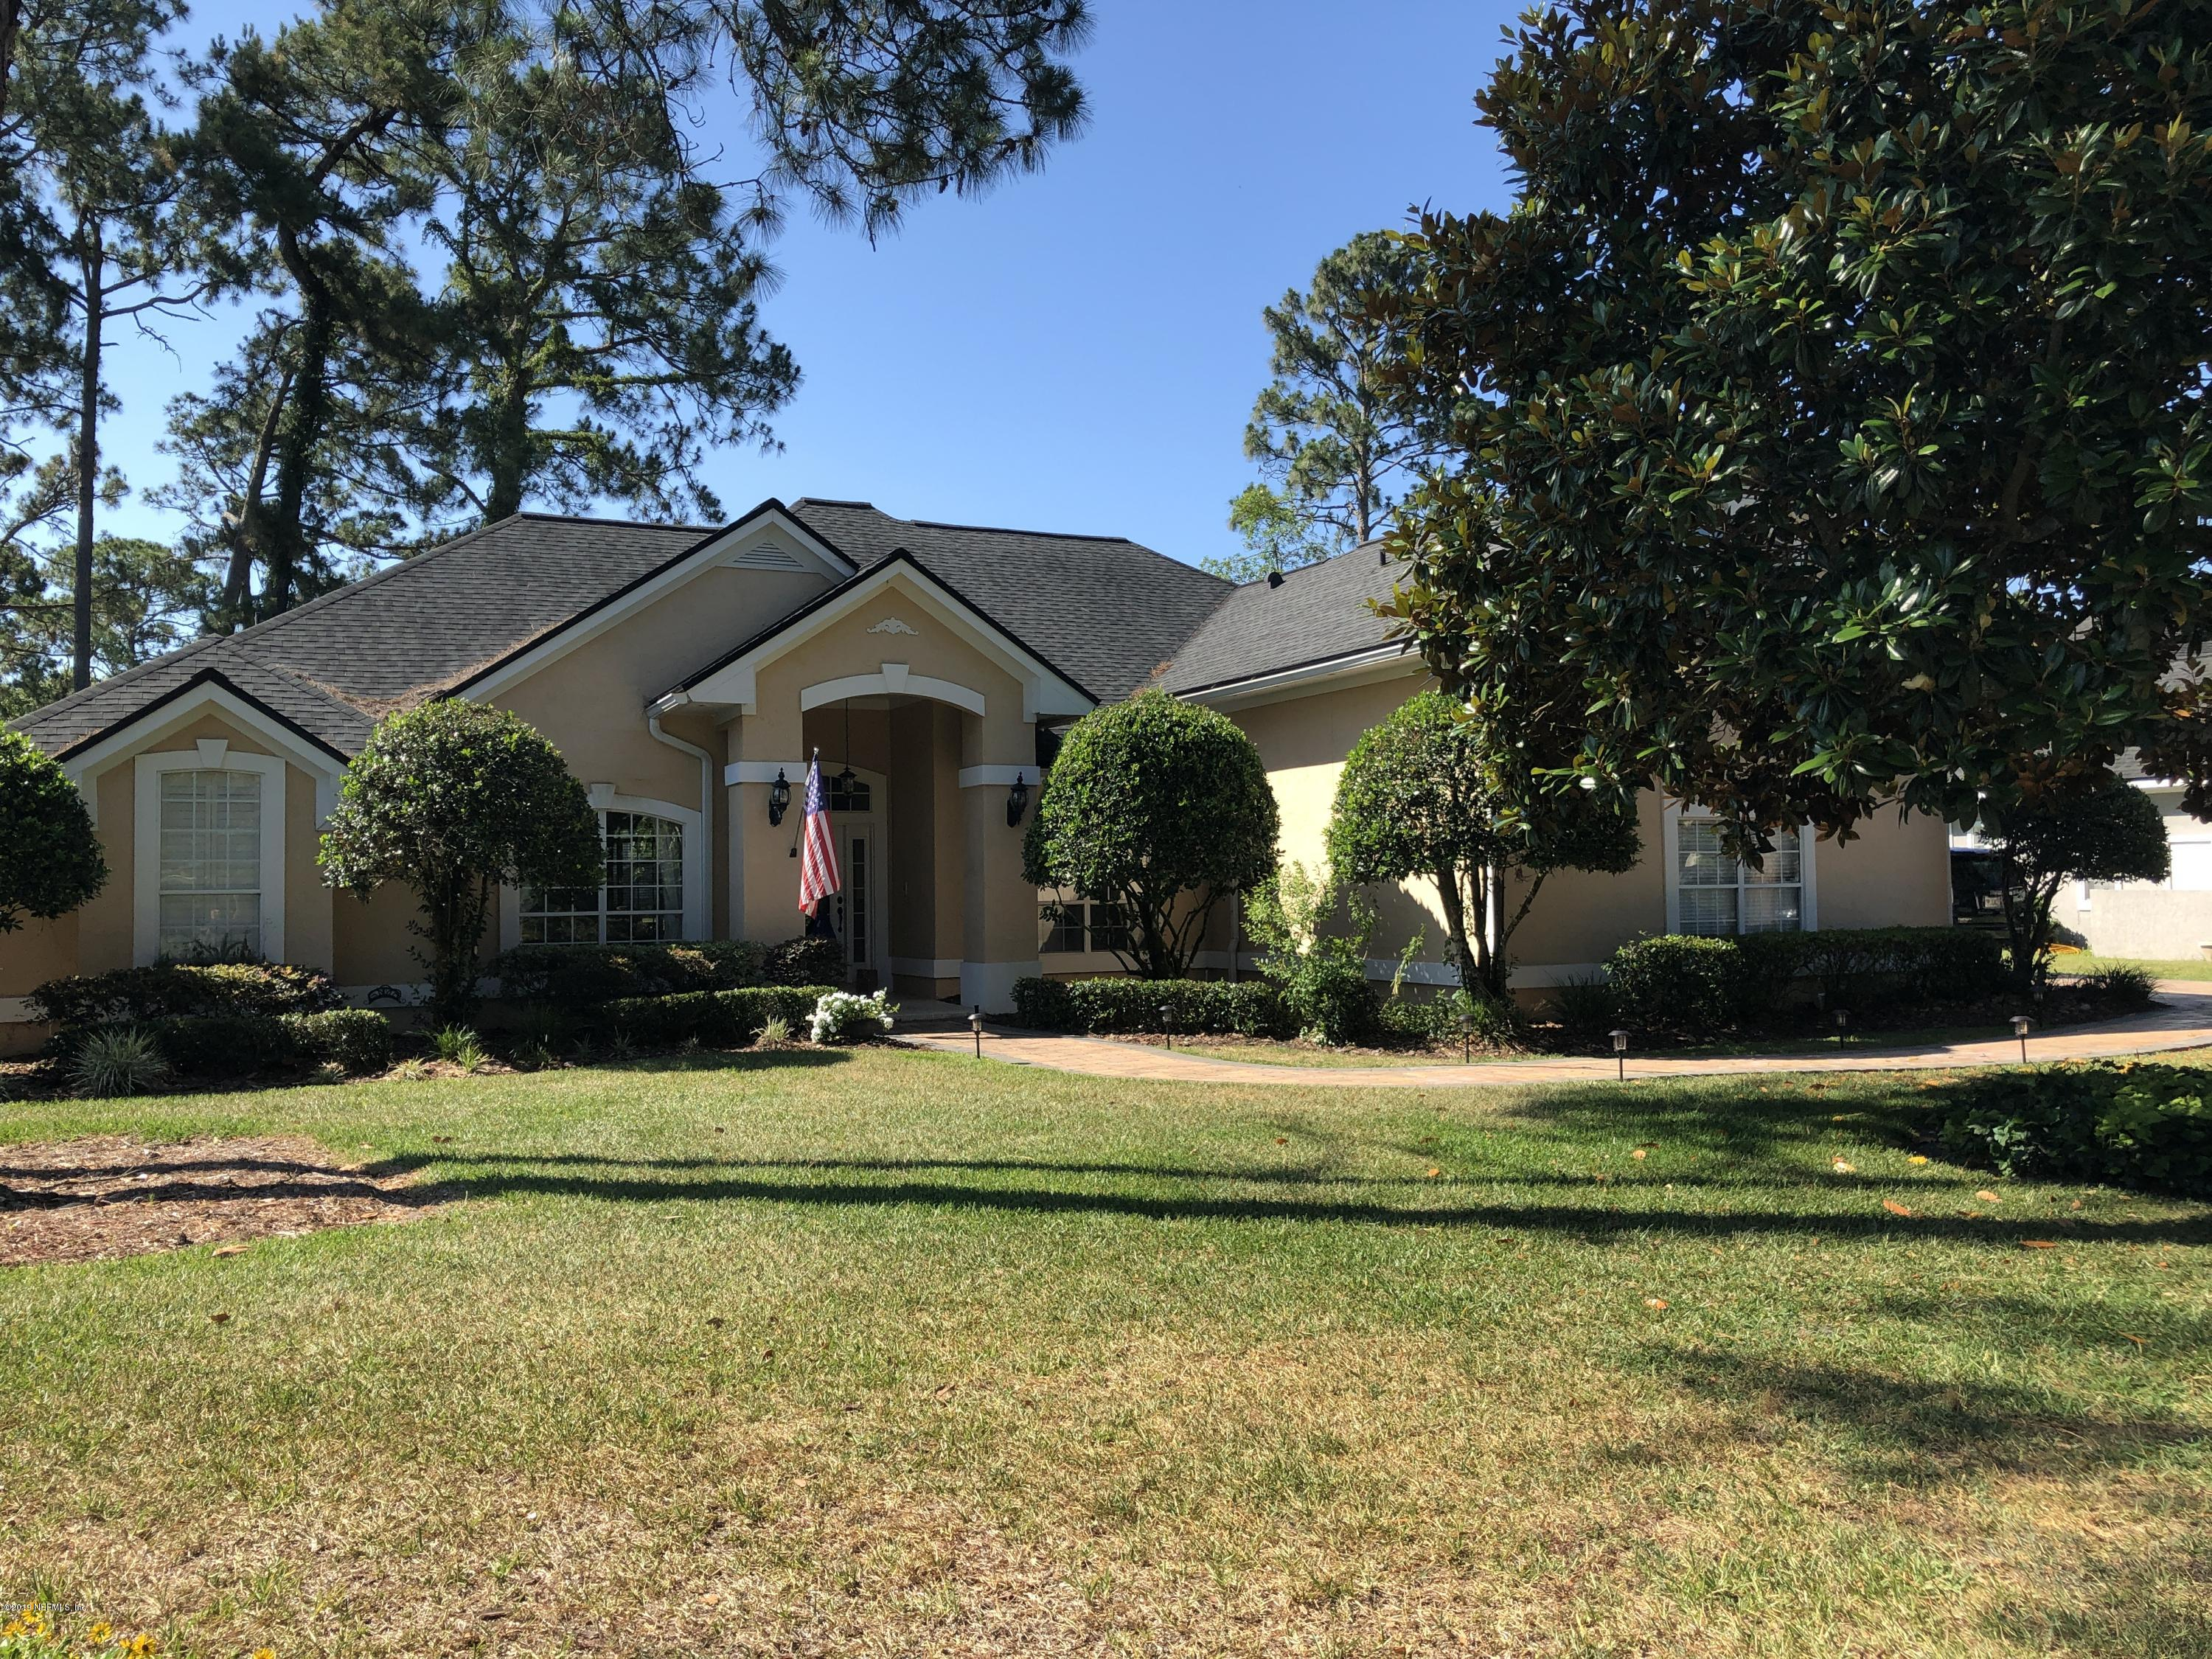 12930 LITTLETON BEND, JACKSONVILLE, FLORIDA 32224, 5 Bedrooms Bedrooms, ,4 BathroomsBathrooms,Residential - single family,For sale,LITTLETON BEND,997220